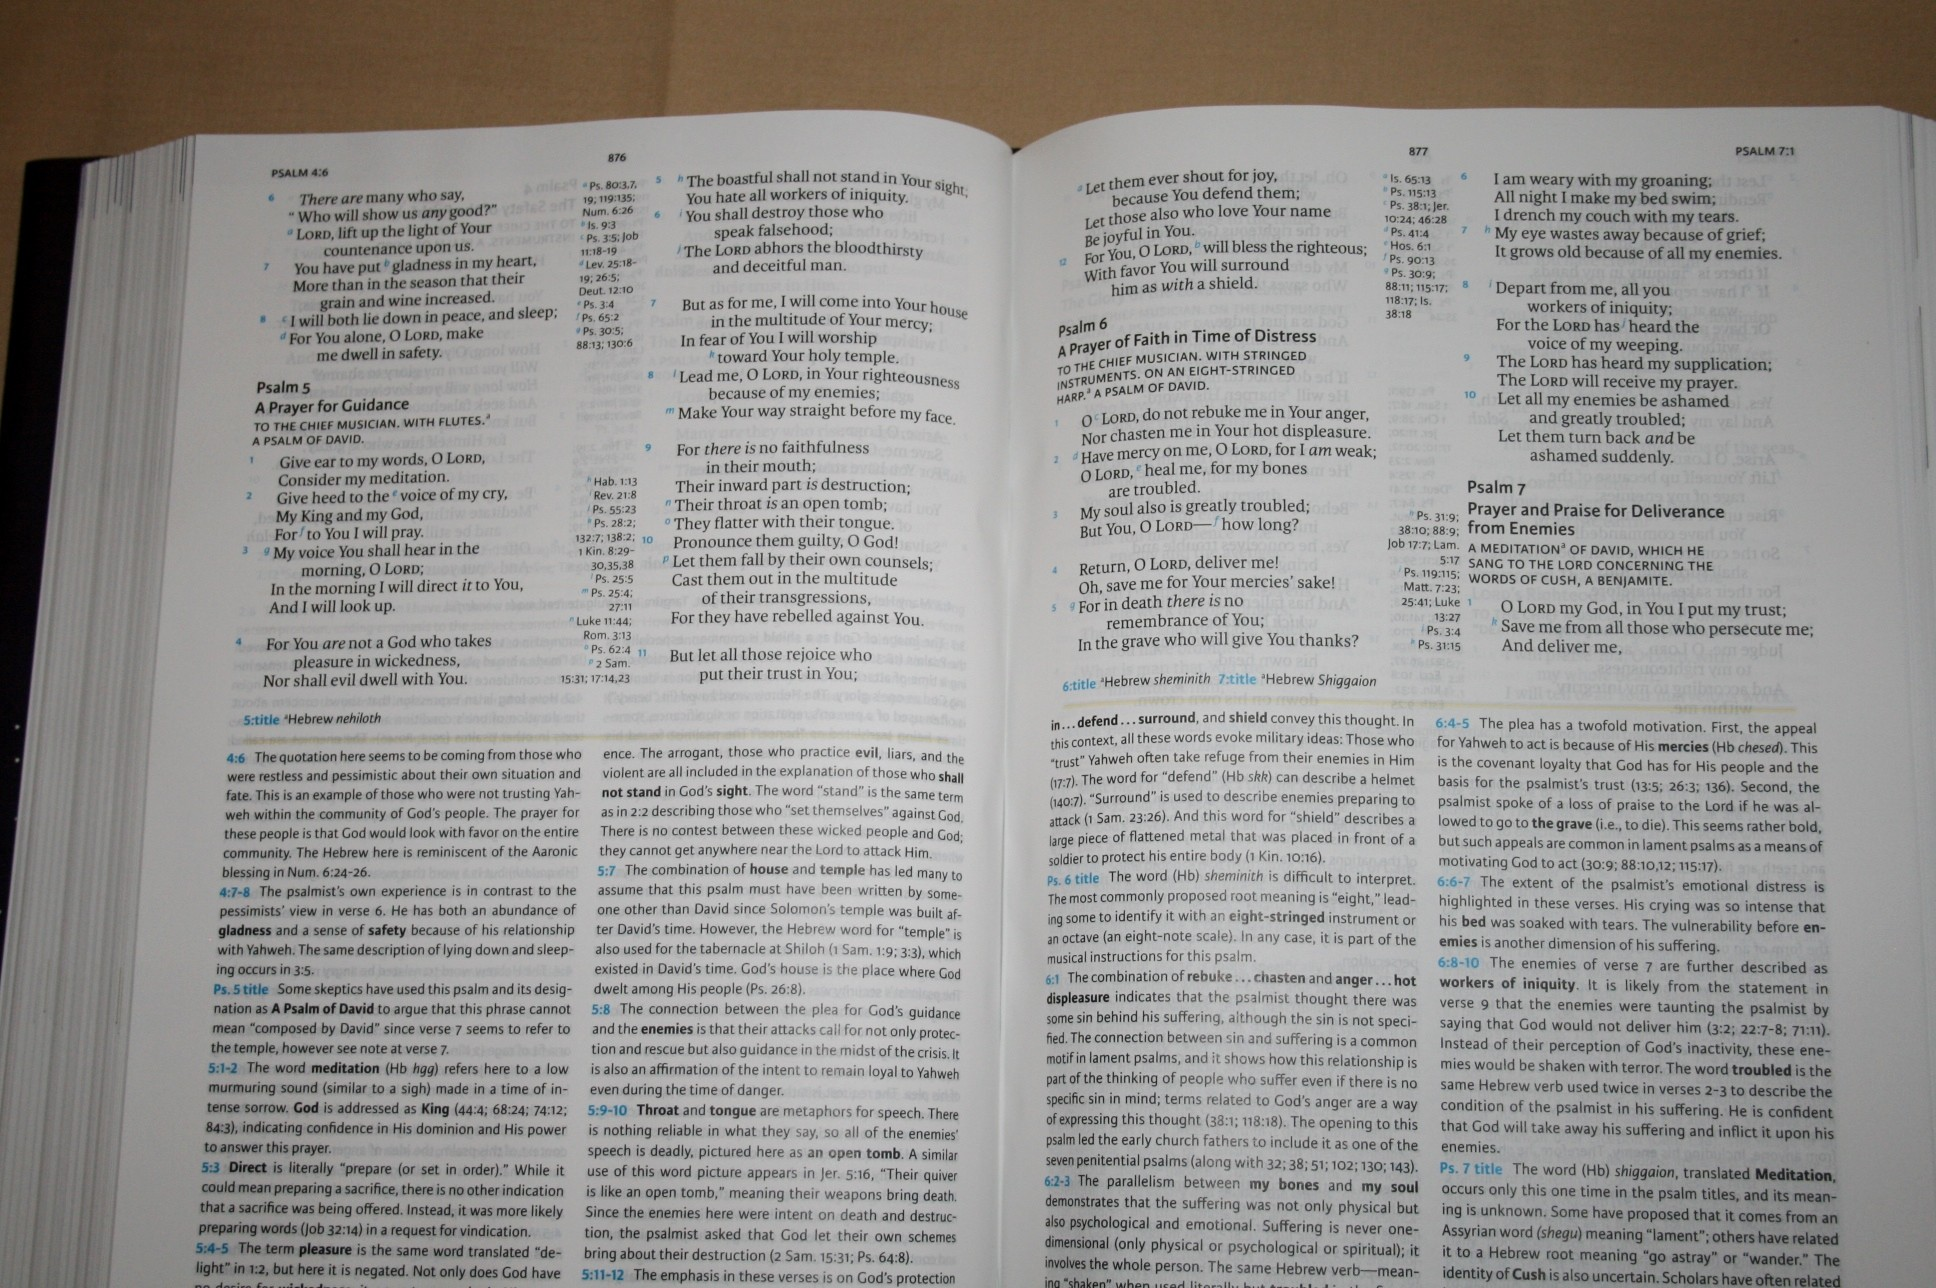 Bible study guide pages